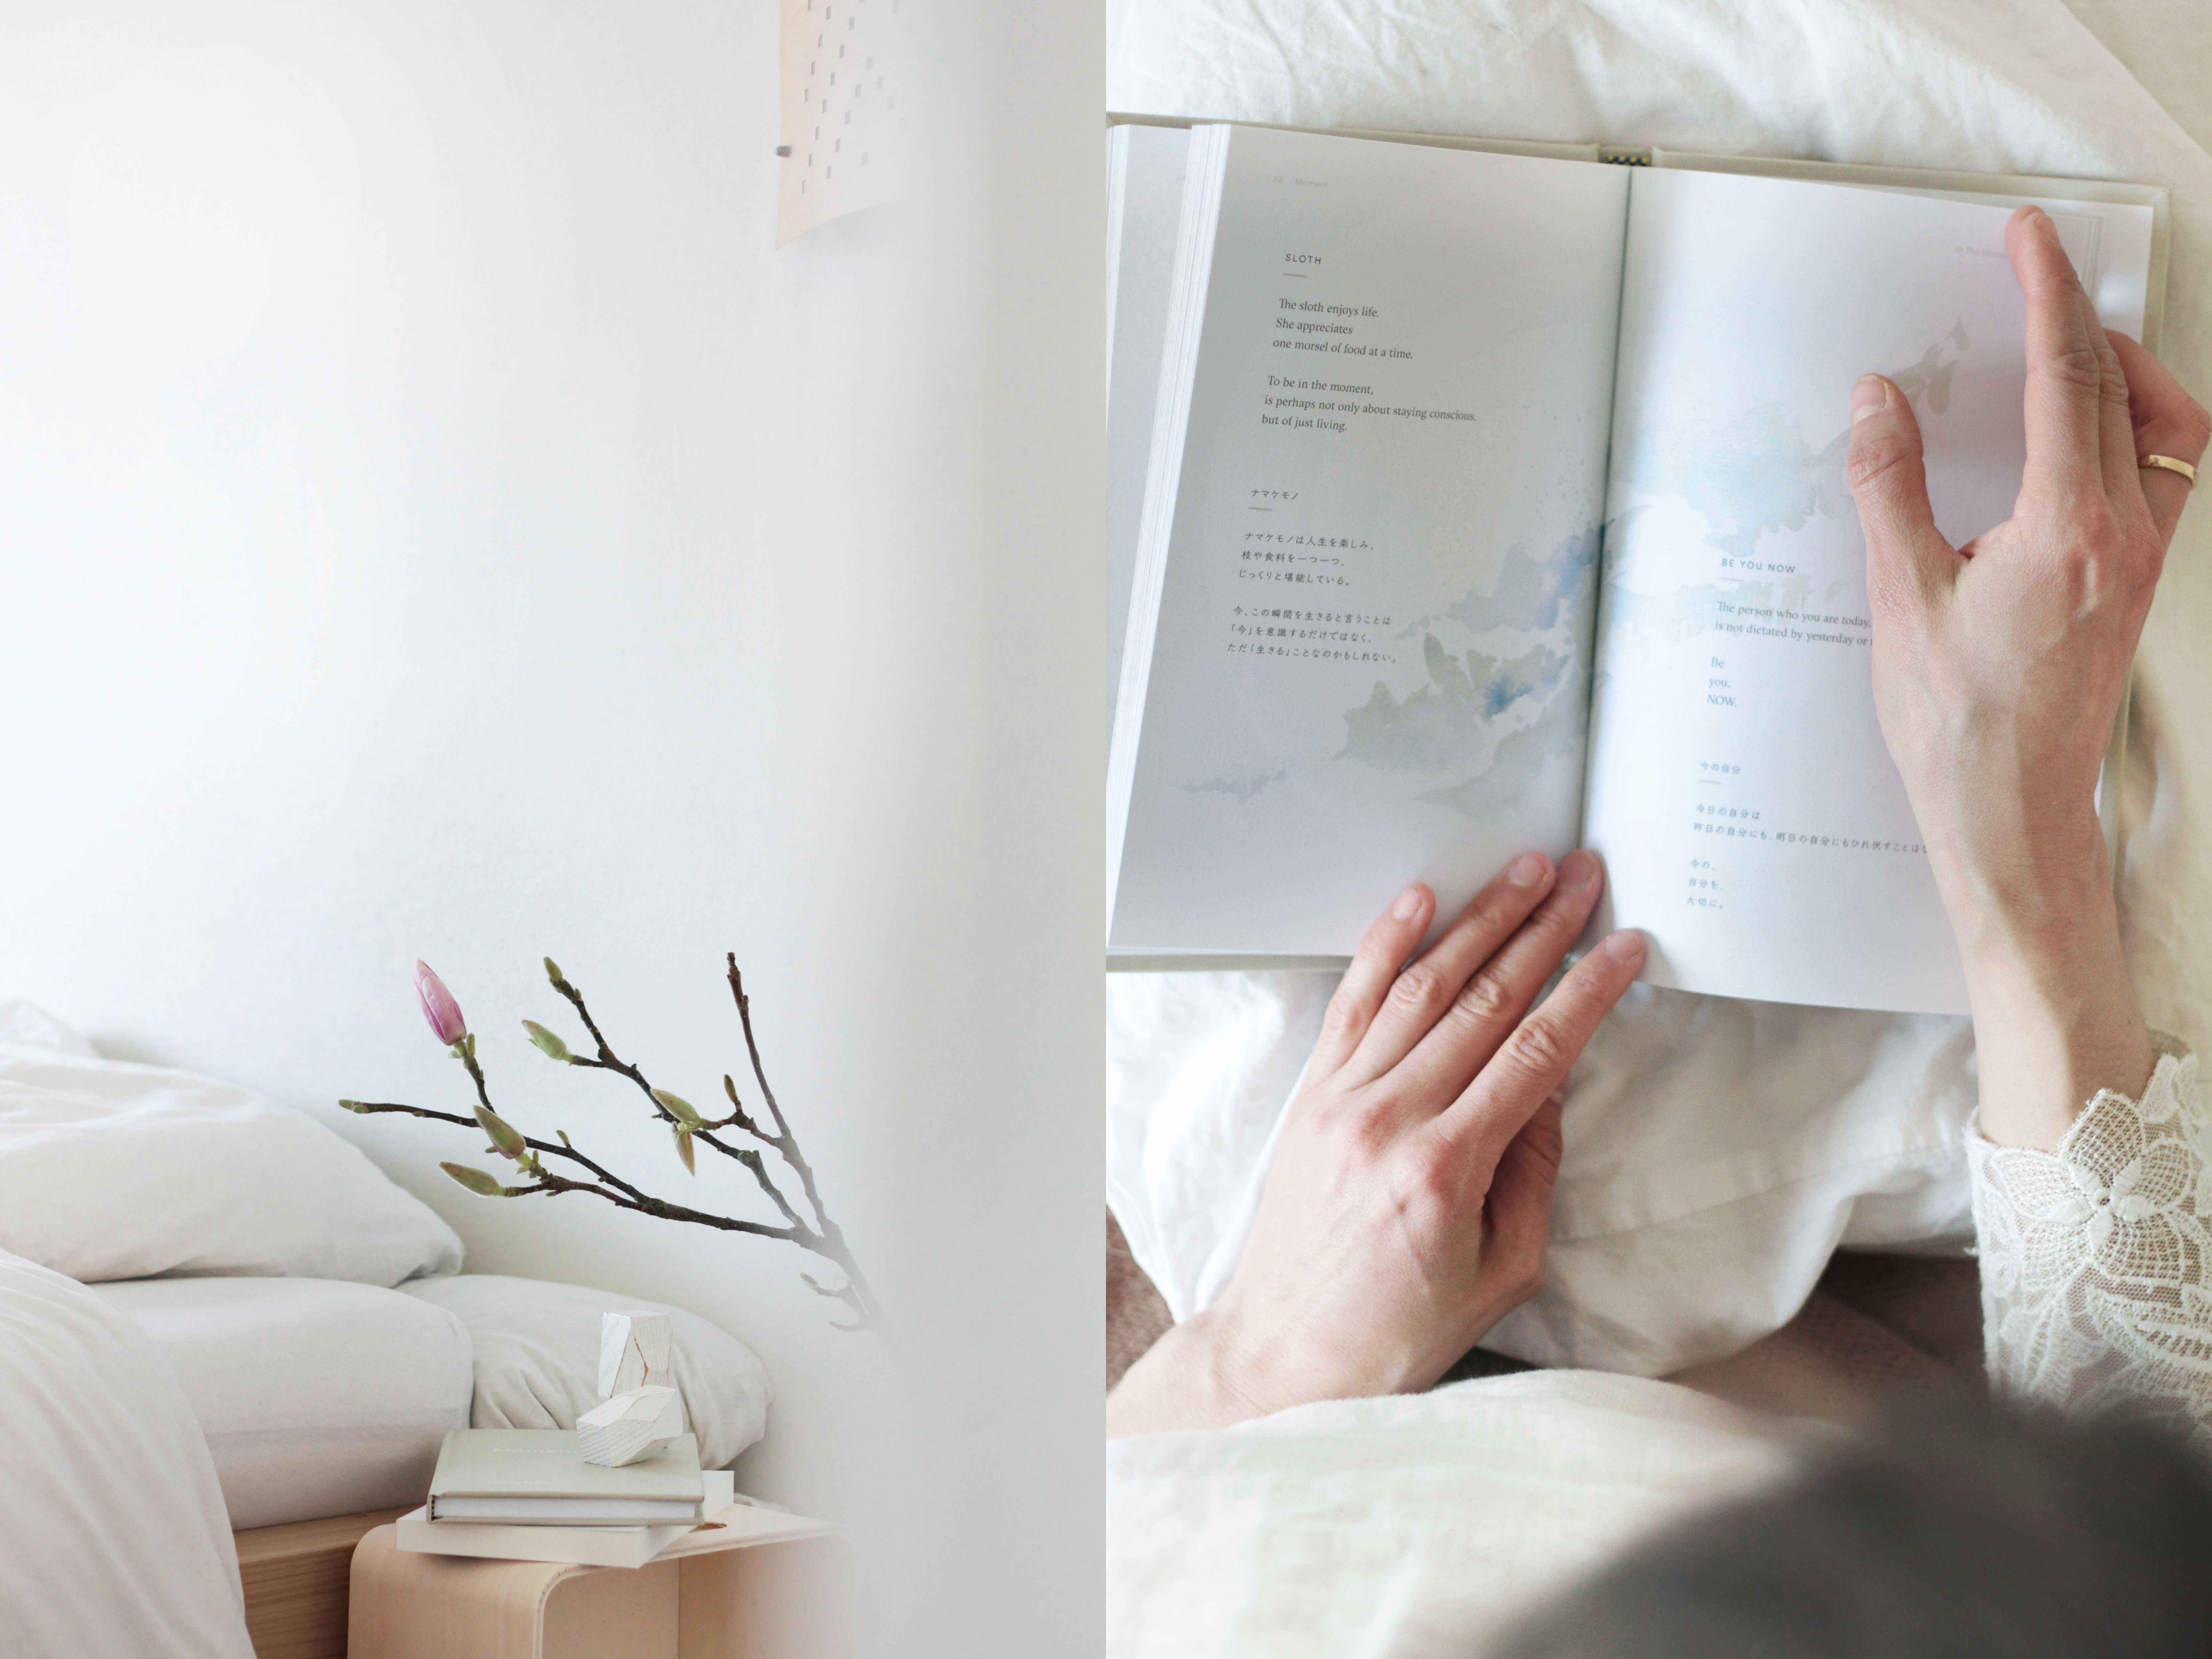 bedside table nightstand reading books holistic slowliving